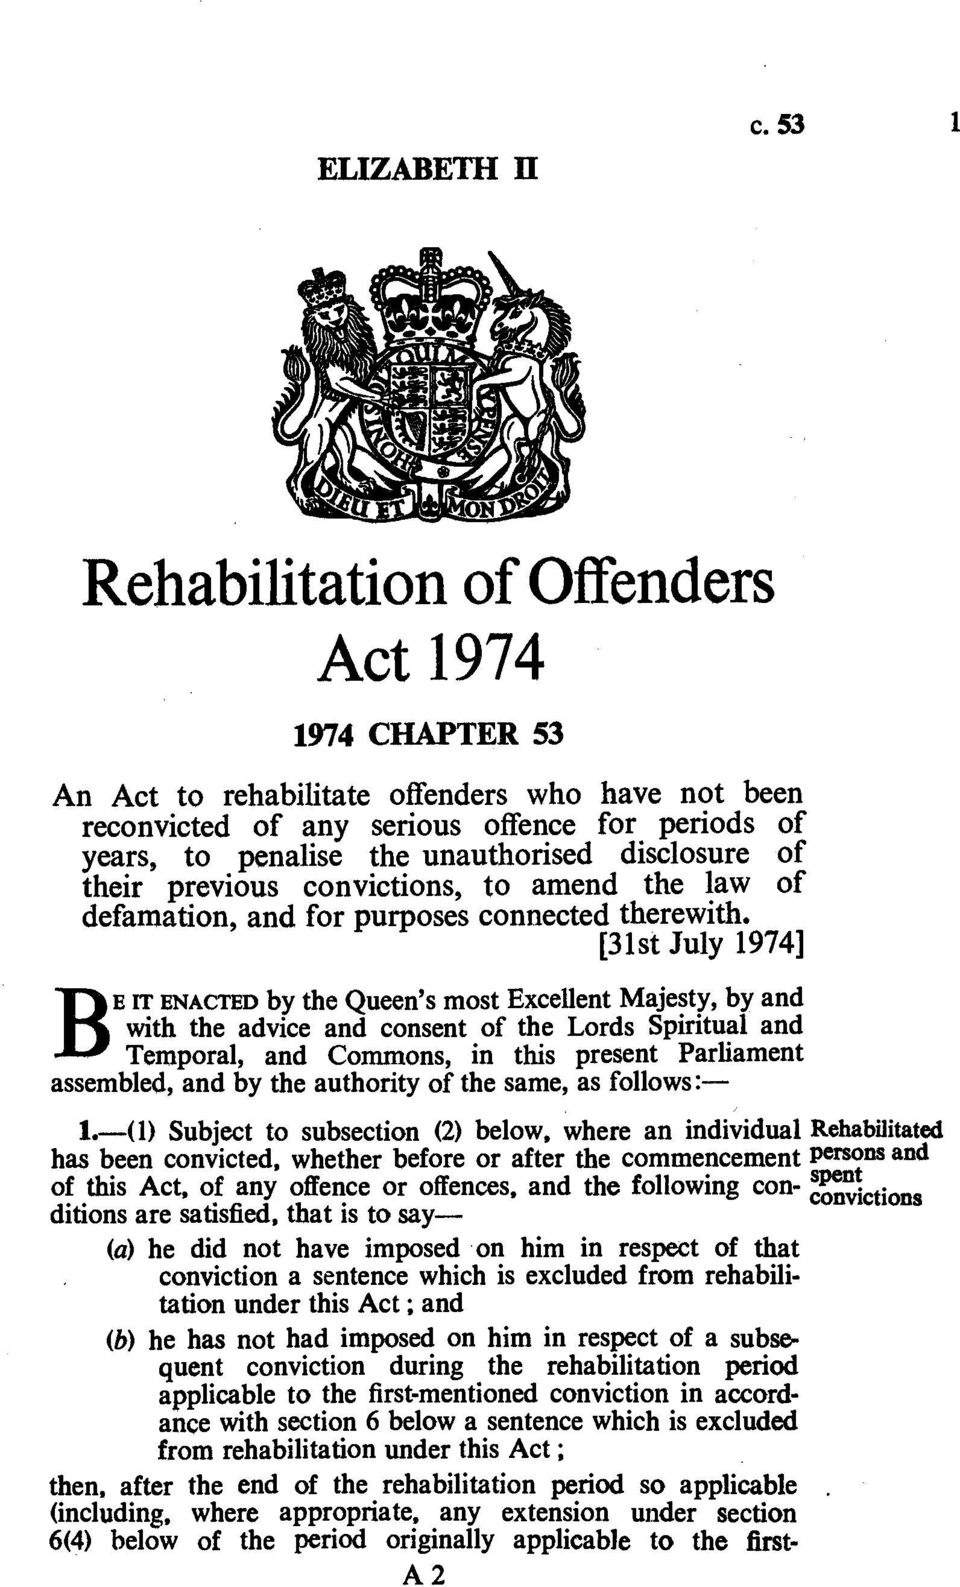 disclosure of their previous convictions, to amend the law of defamation, and for purposes connected therewith.